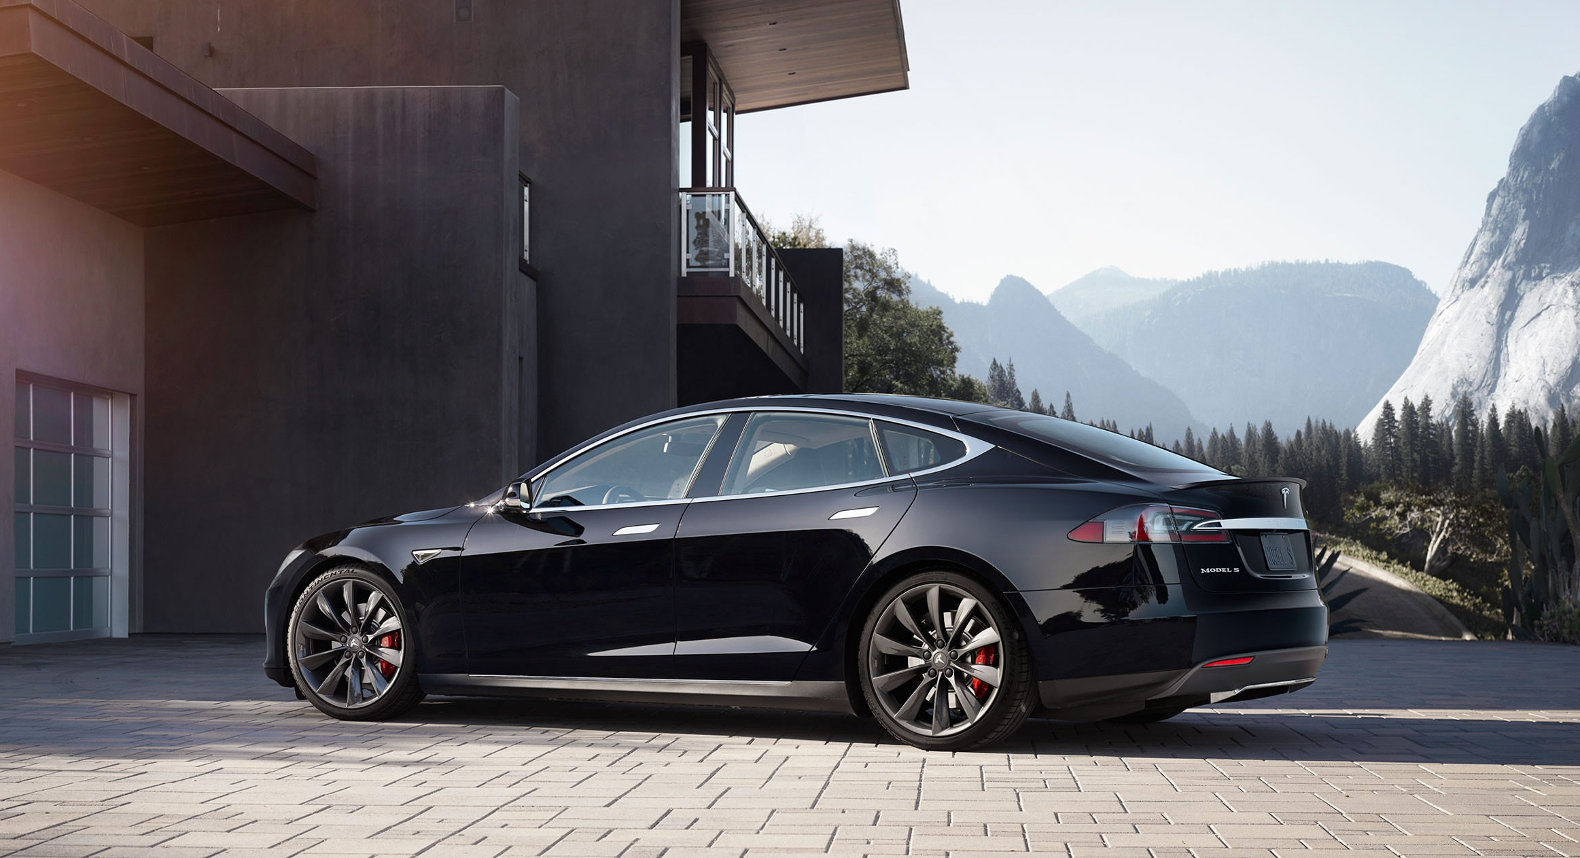 Tesla is working on an electric motor that lasts a million miles